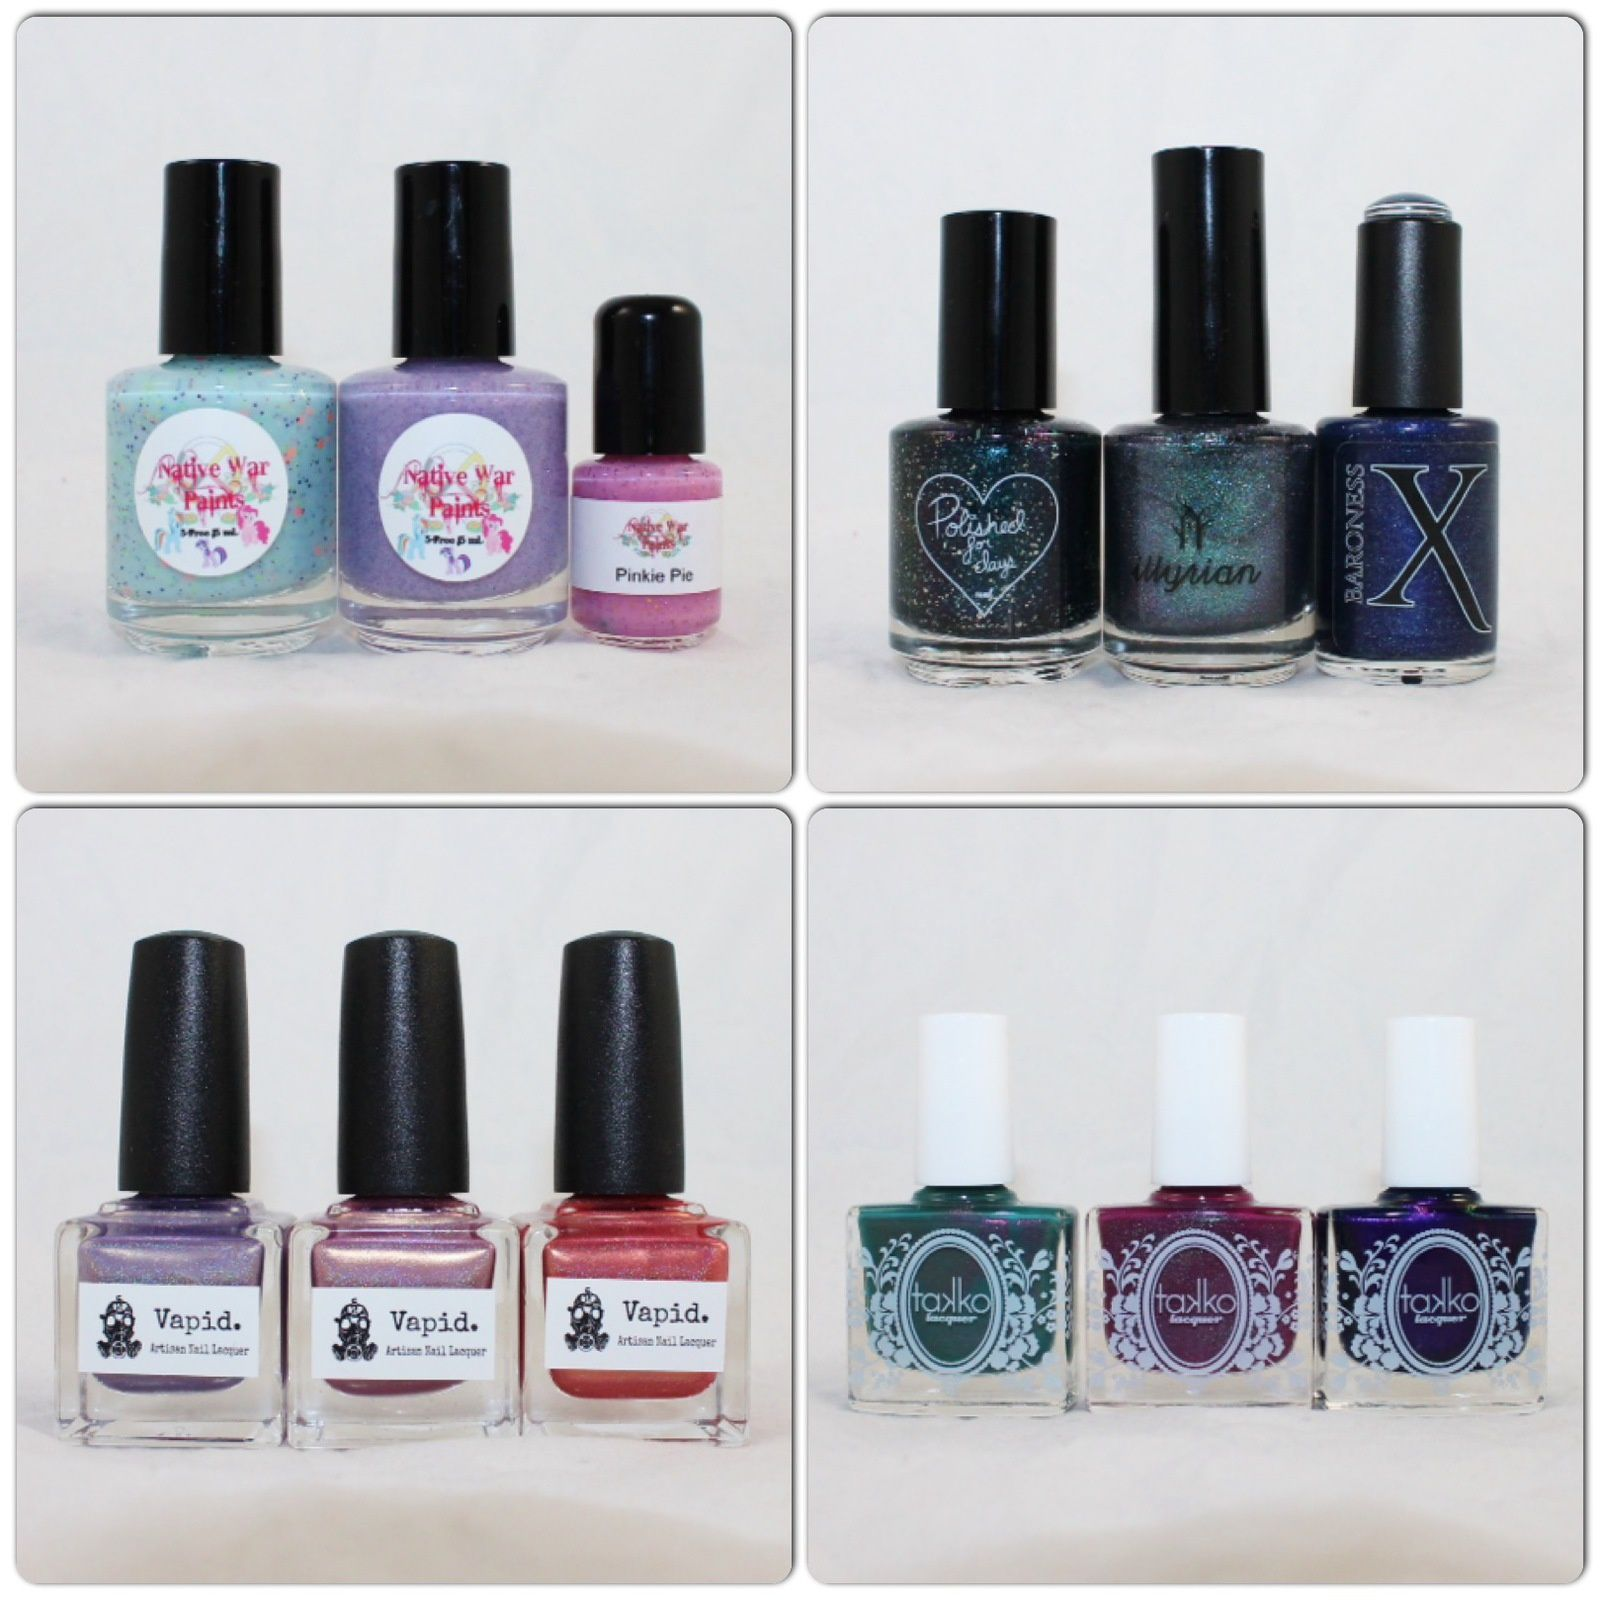 NWP Monthly Box June 2016, For the Love of Polish June 2016. Vapid Lacquer Unicorn Blood, Once Upon a Time, Dragon Tears. Takko Lacquer Cactus Rose, Grape Juice, Druzy Quartz.